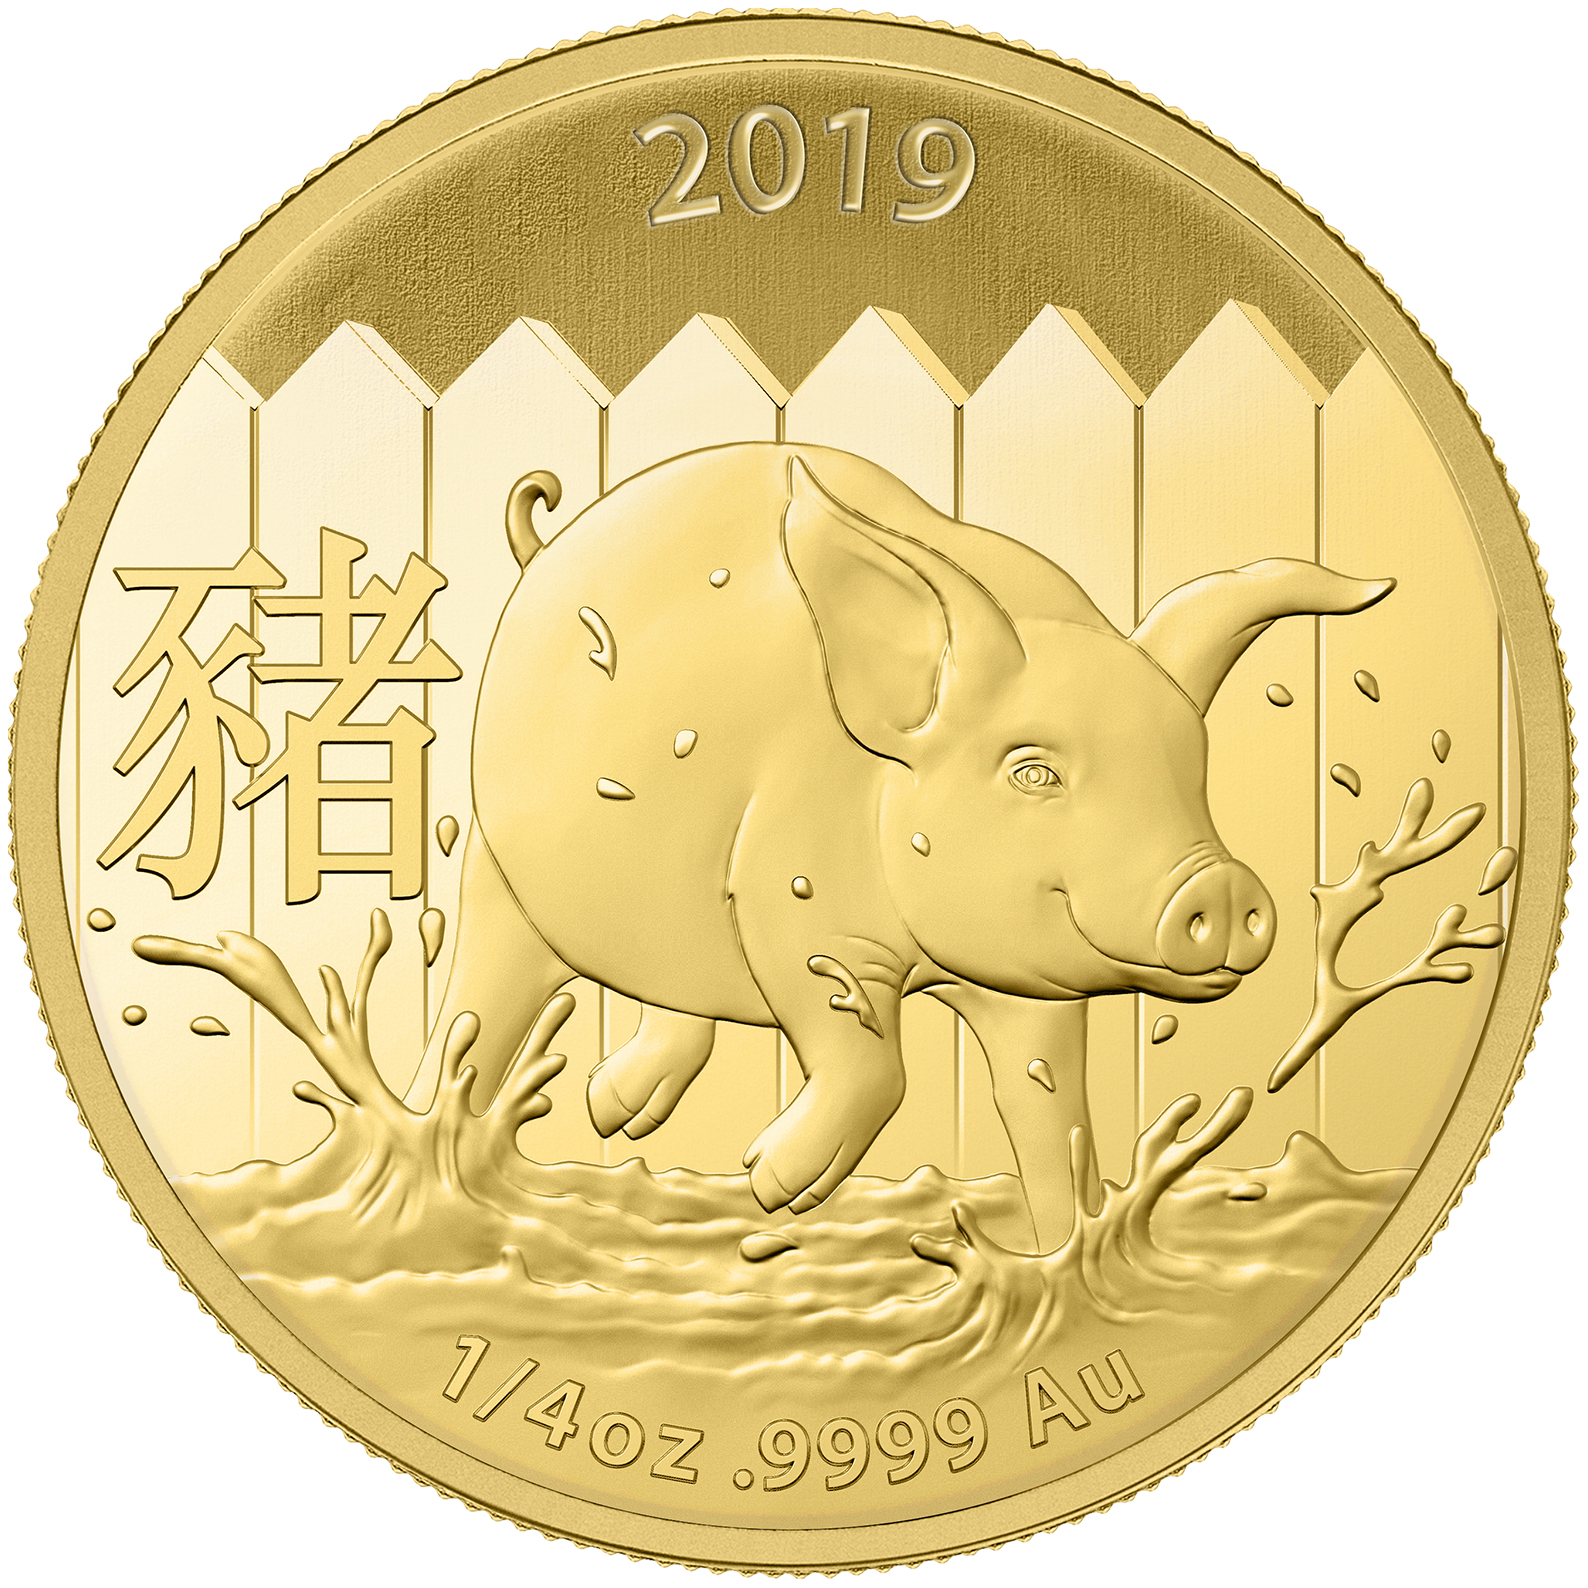 1/4 oz Gold Coin - Lunar Pig BU 2019